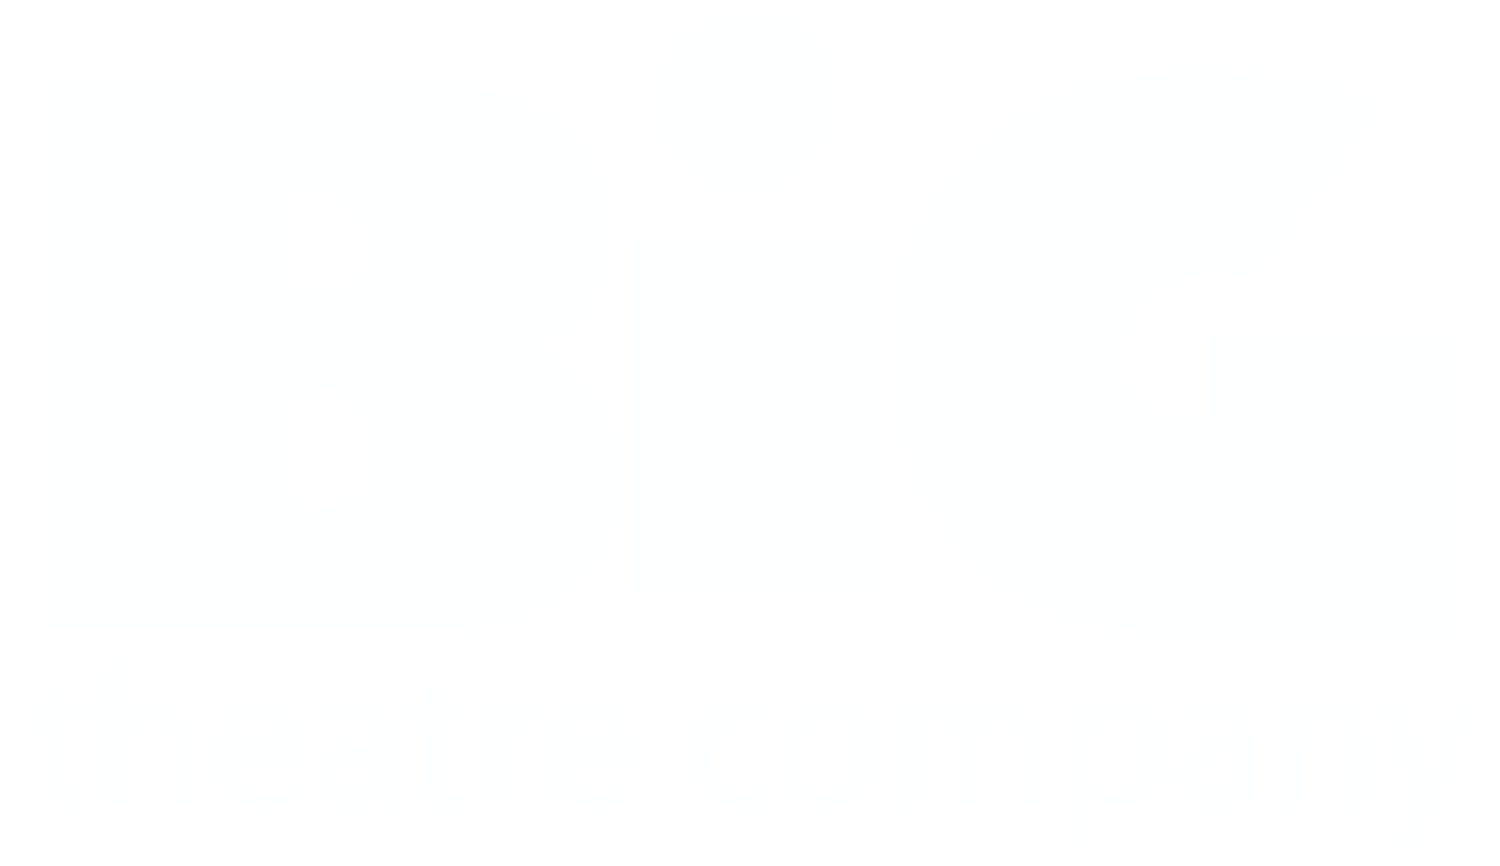 BIG Theatre Company